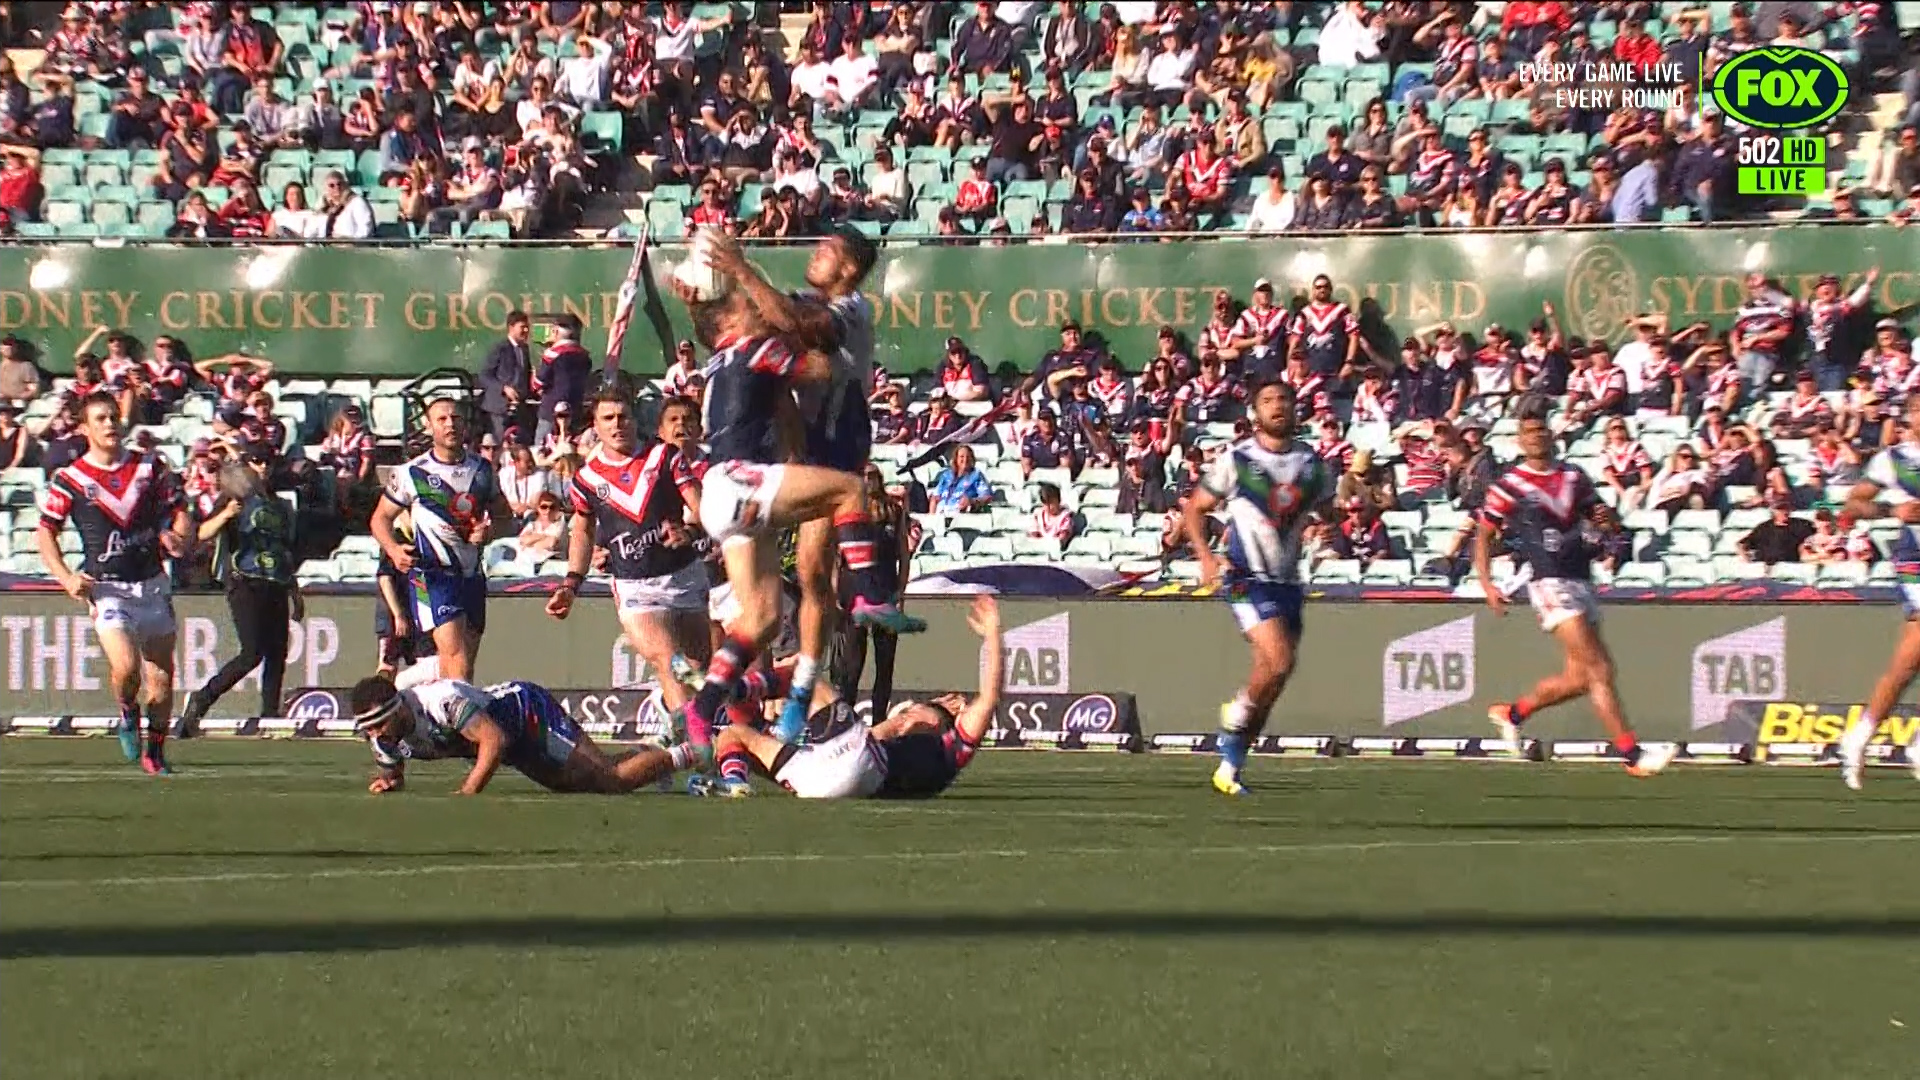 Roosters v Warriors: Cooper Cronk falcon provides stunning try assist